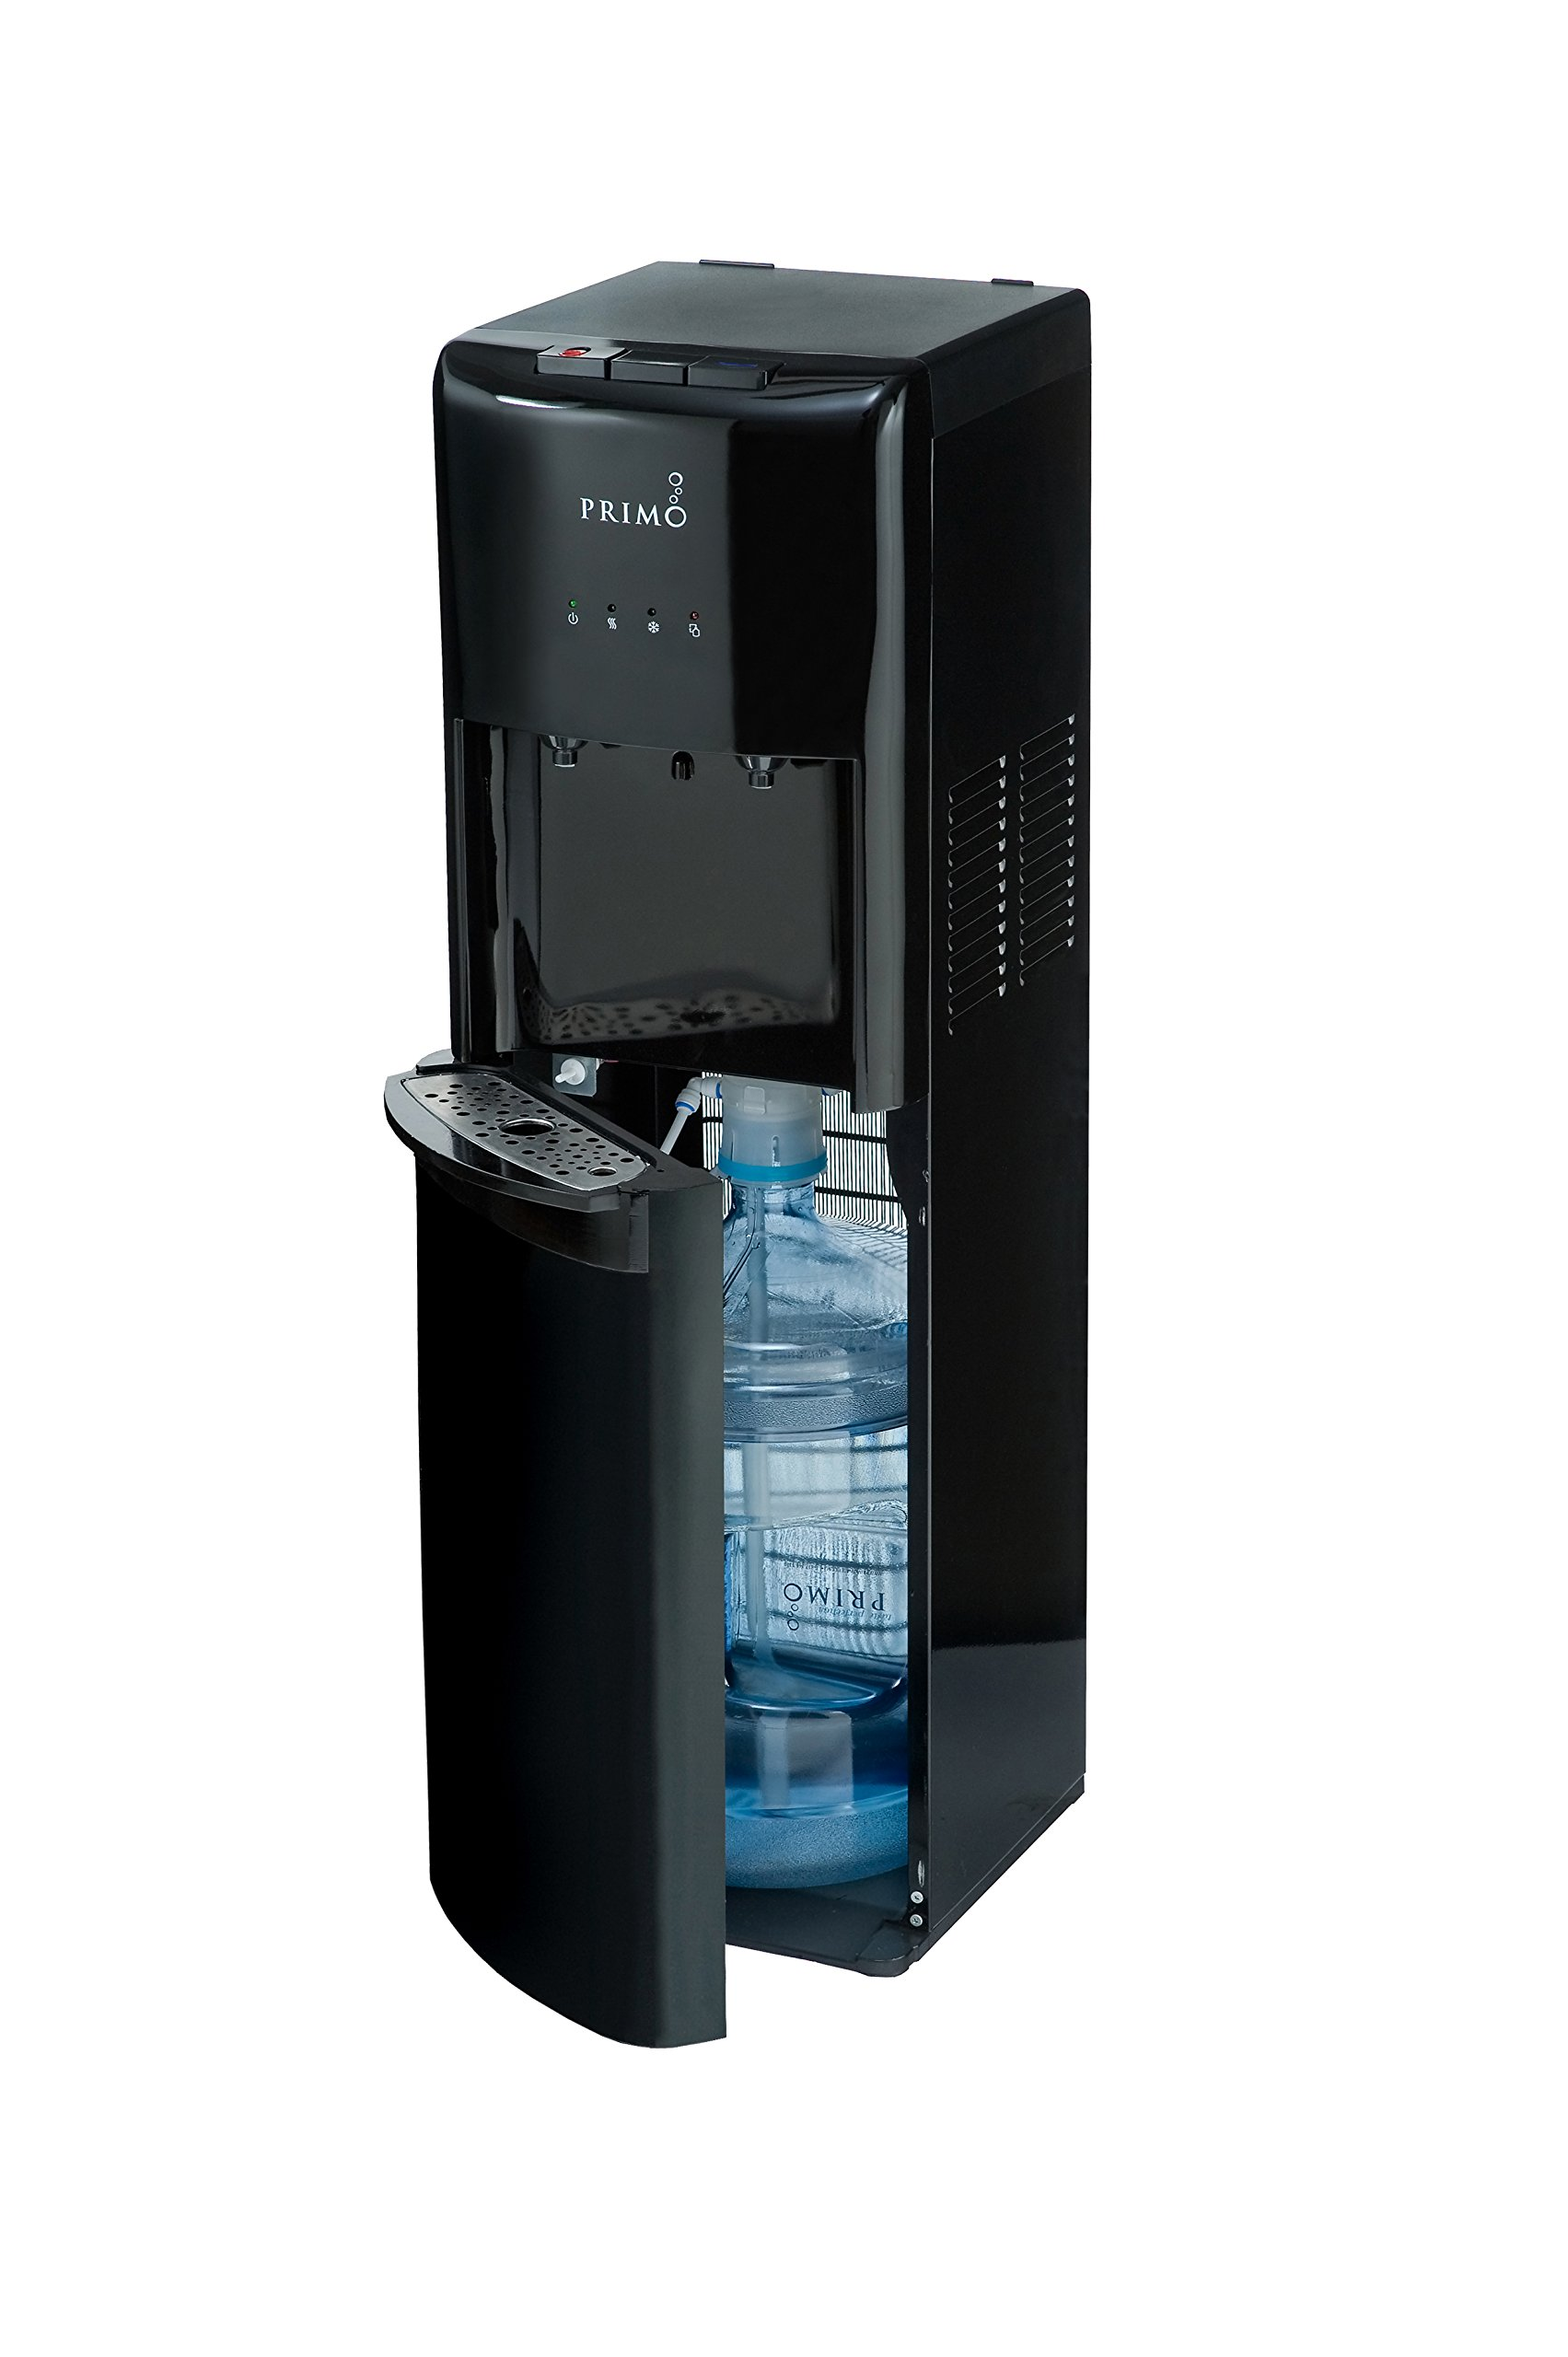 Primo Bottom Loading Water Cooler - 2 Temperature Settings, Hot & Cold - Energy Star Rated Water Dispenser with Child-Resistant Safety Feature Supports 3 or 5 Gallon Water Jugs [Black] by Primo